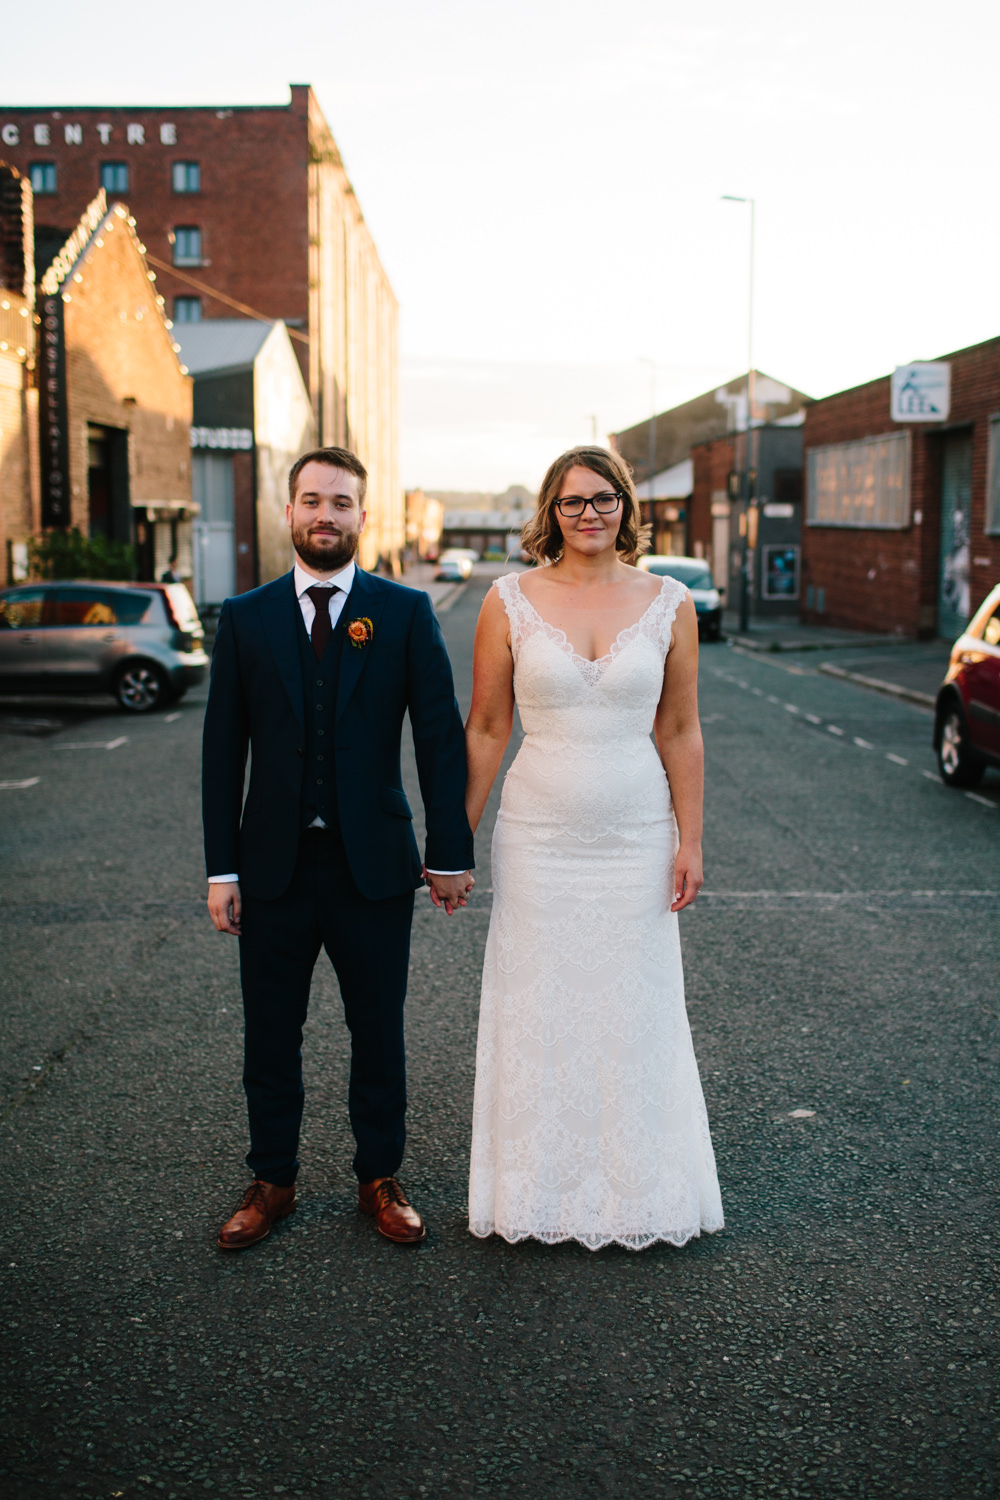 Bride Bridal Watters Lace Sleeveless Dress Gown Navy Suit Groom Glasses Constellations Liverpool Wedding Dan Hough Photo